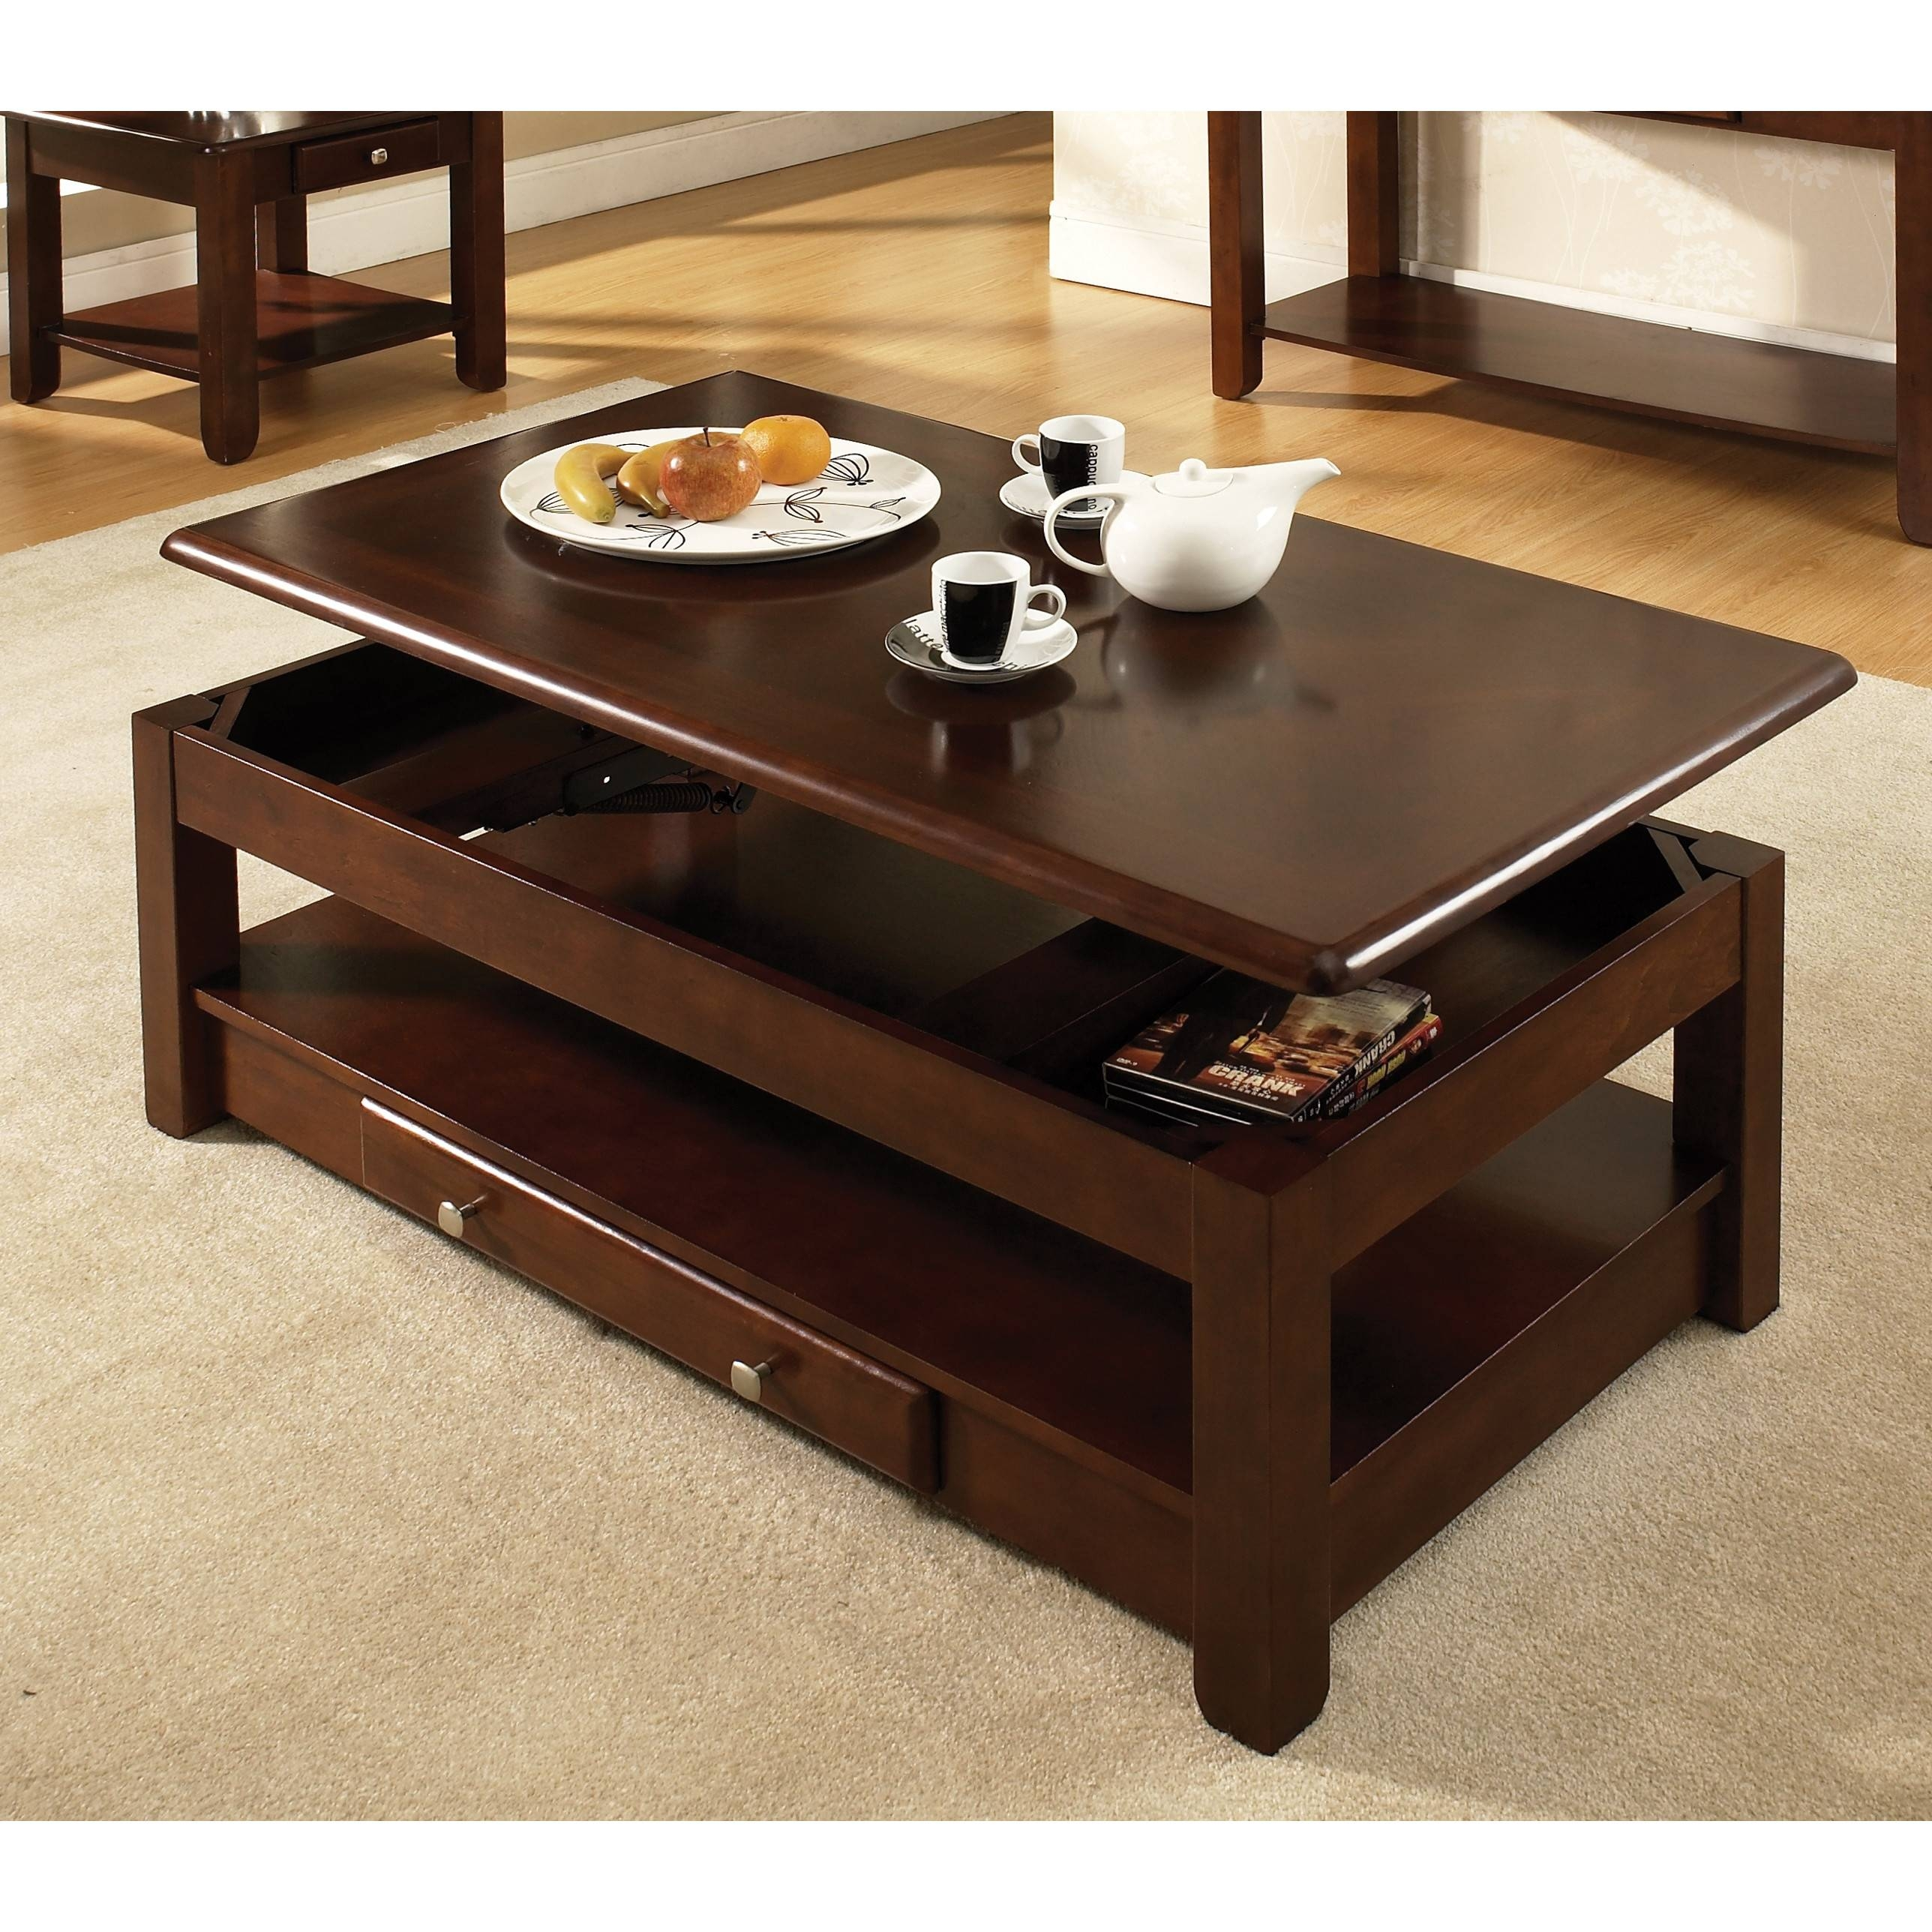 Swing Top Coffee Tables | Coffee Tables Decoration with regard to Flip Top Coffee Tables (Image 24 of 30)